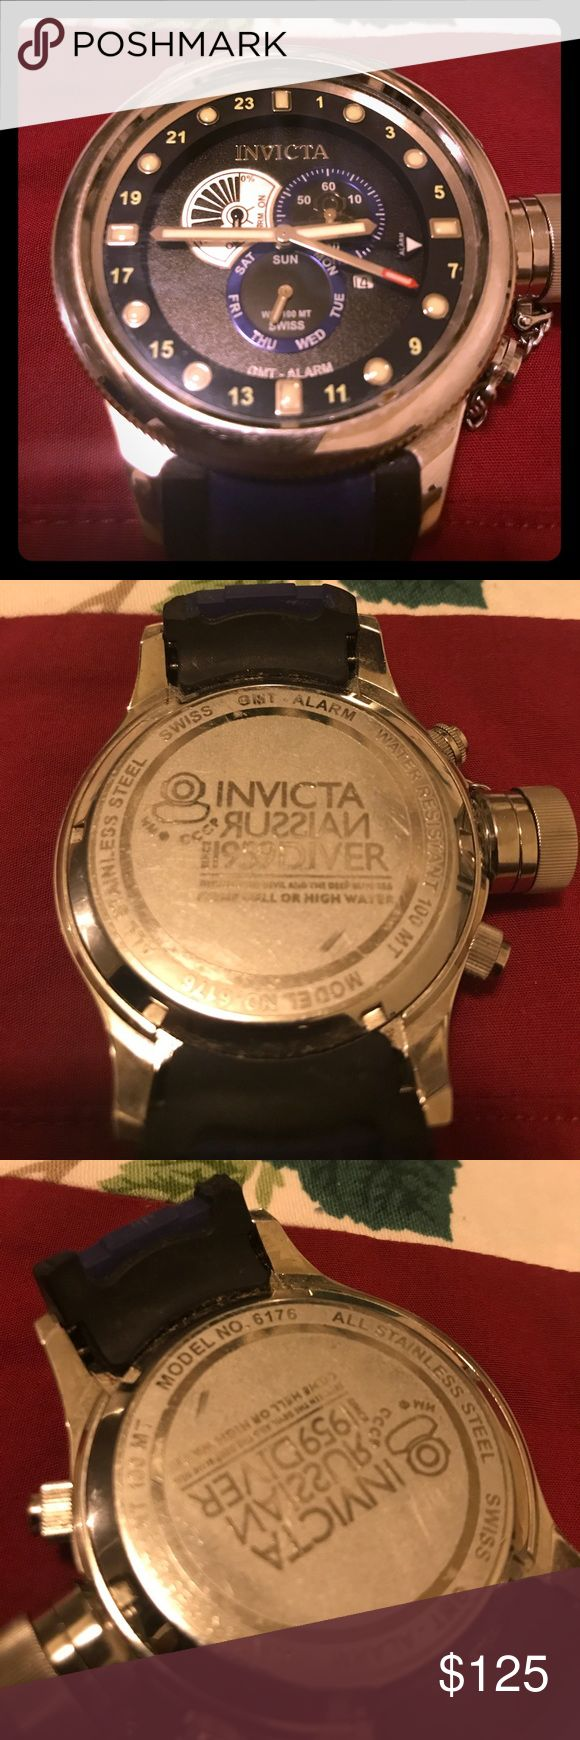 FIX Invicta 6176 Men's Russian Diver 1959 Watch! For sale is a fixer upper, rare Invicta Russian Diver 1959 Collection Quinotaur Black Watch Model no. 6176. What you see is what you get. The watch has broken bands and needs a new battery. There is minimal wear to the stainless steel case and no scratches on the face. Excellent chance to buy and own a rare Invicta watch with little needed to get working and wearable again. Invicta Accessories Watches